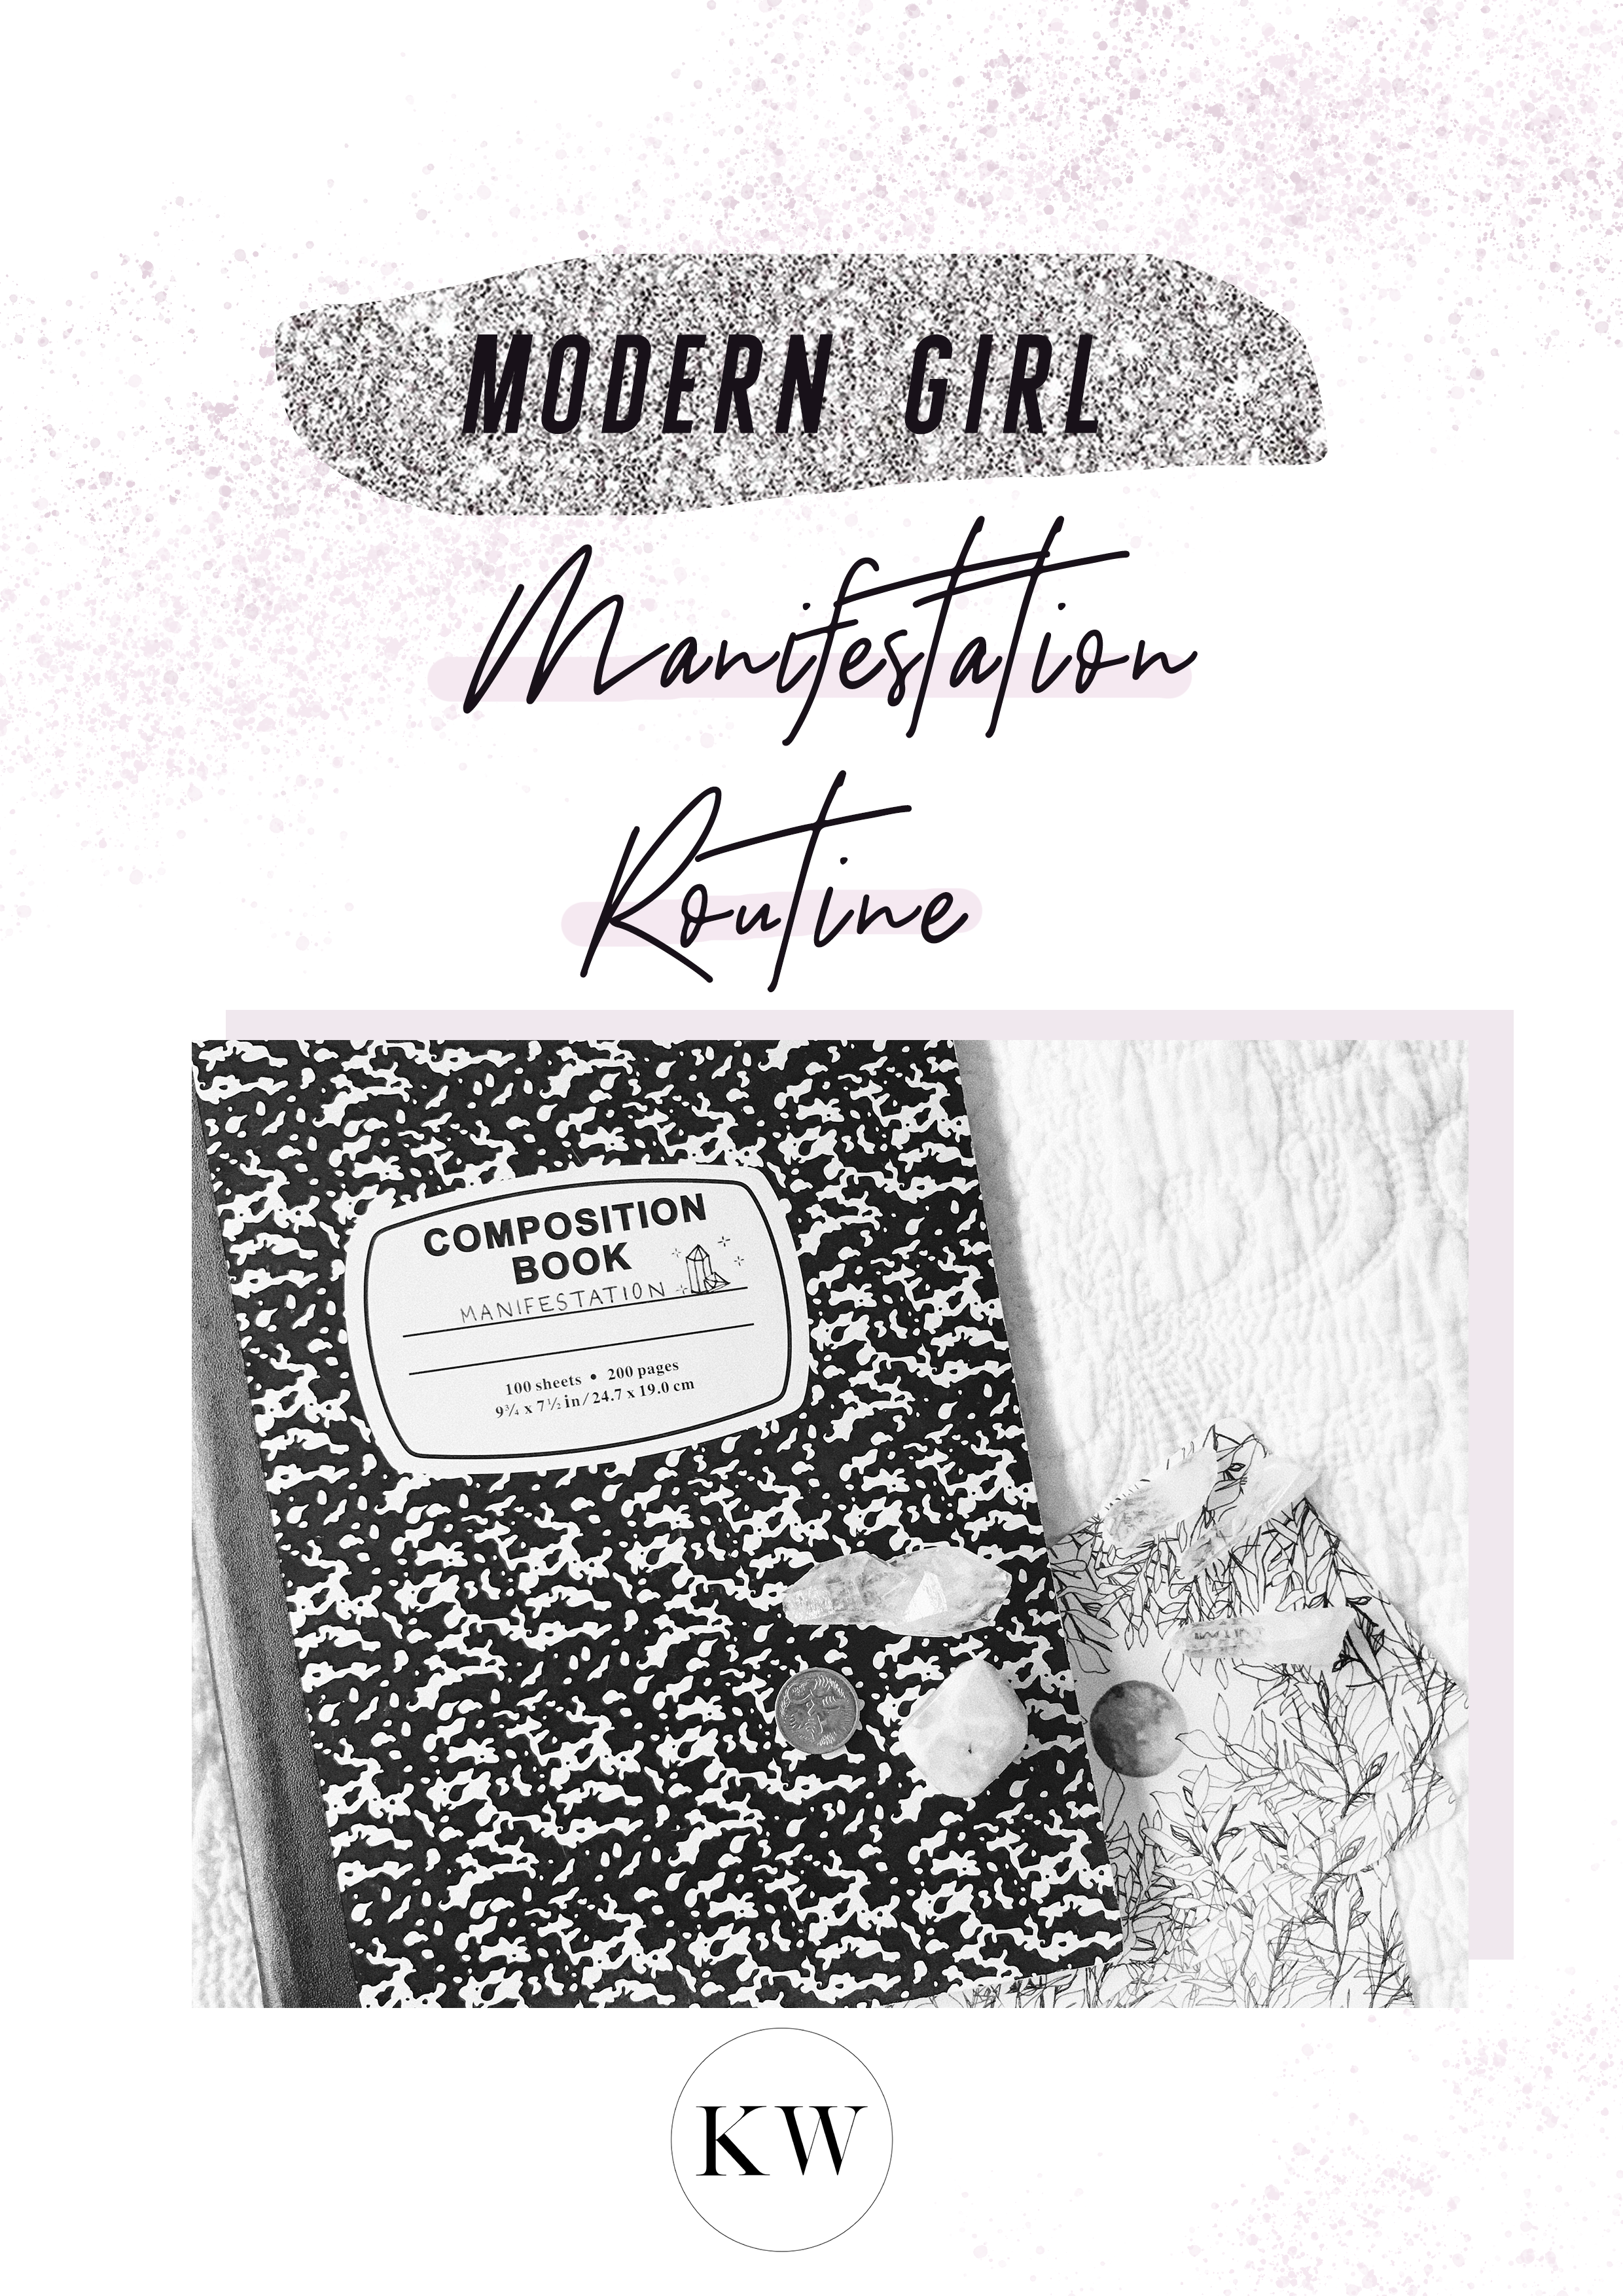 The Modern Girl Manifestation Routine Guide  COMPLIMENTARY DOWNLOAD from the KW resource library by subscribing to Kimberley's blog here. -